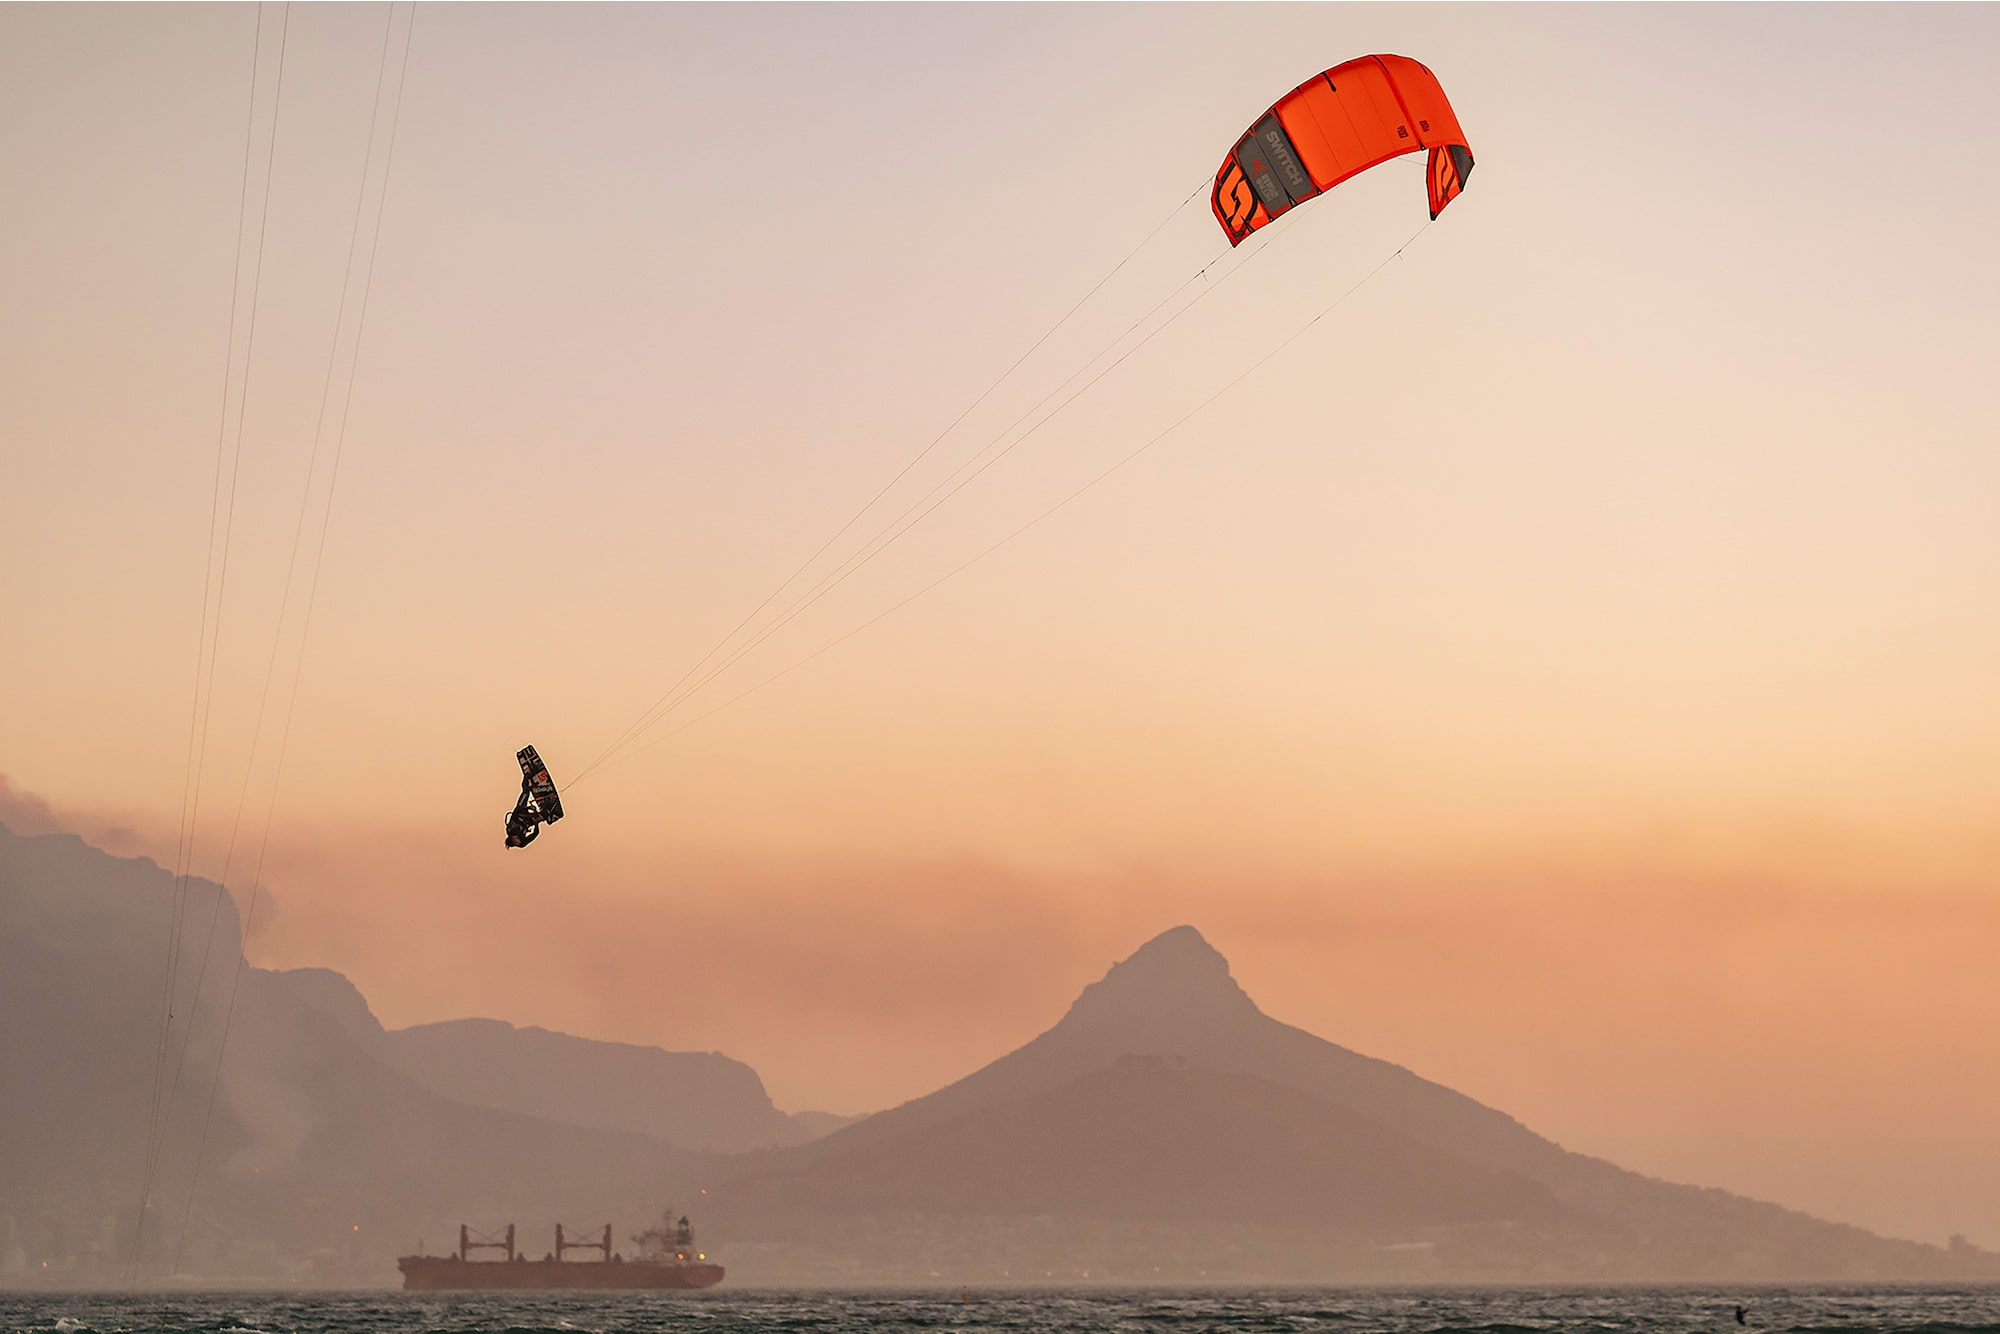 danas macijauskas sony alpha 7III kite surfer at dusk above the ocean with a ship in the background